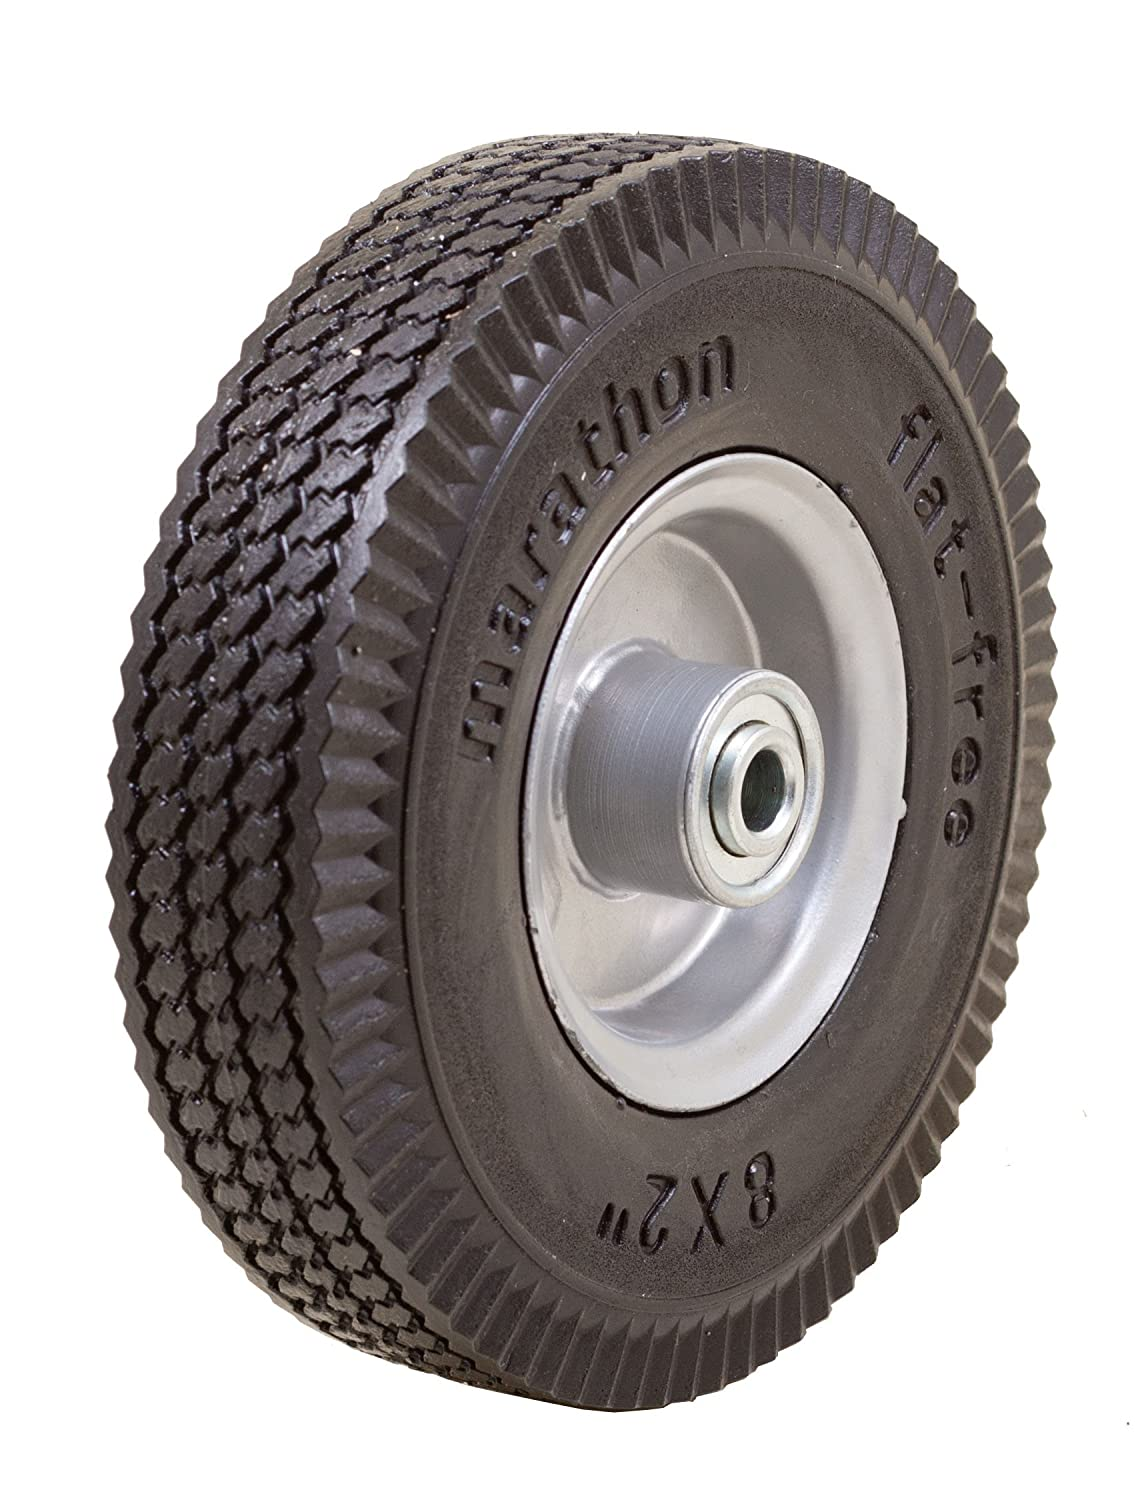 Marathon 8x2 Flat Free, Hand Truck / All Purpose Utility Tire on Wheel, 2.375 Centered Hub, 1/2 Bearings Marathon 8x2 Flat Free 2.375 Centered Hub 1/2 Bearings 33102